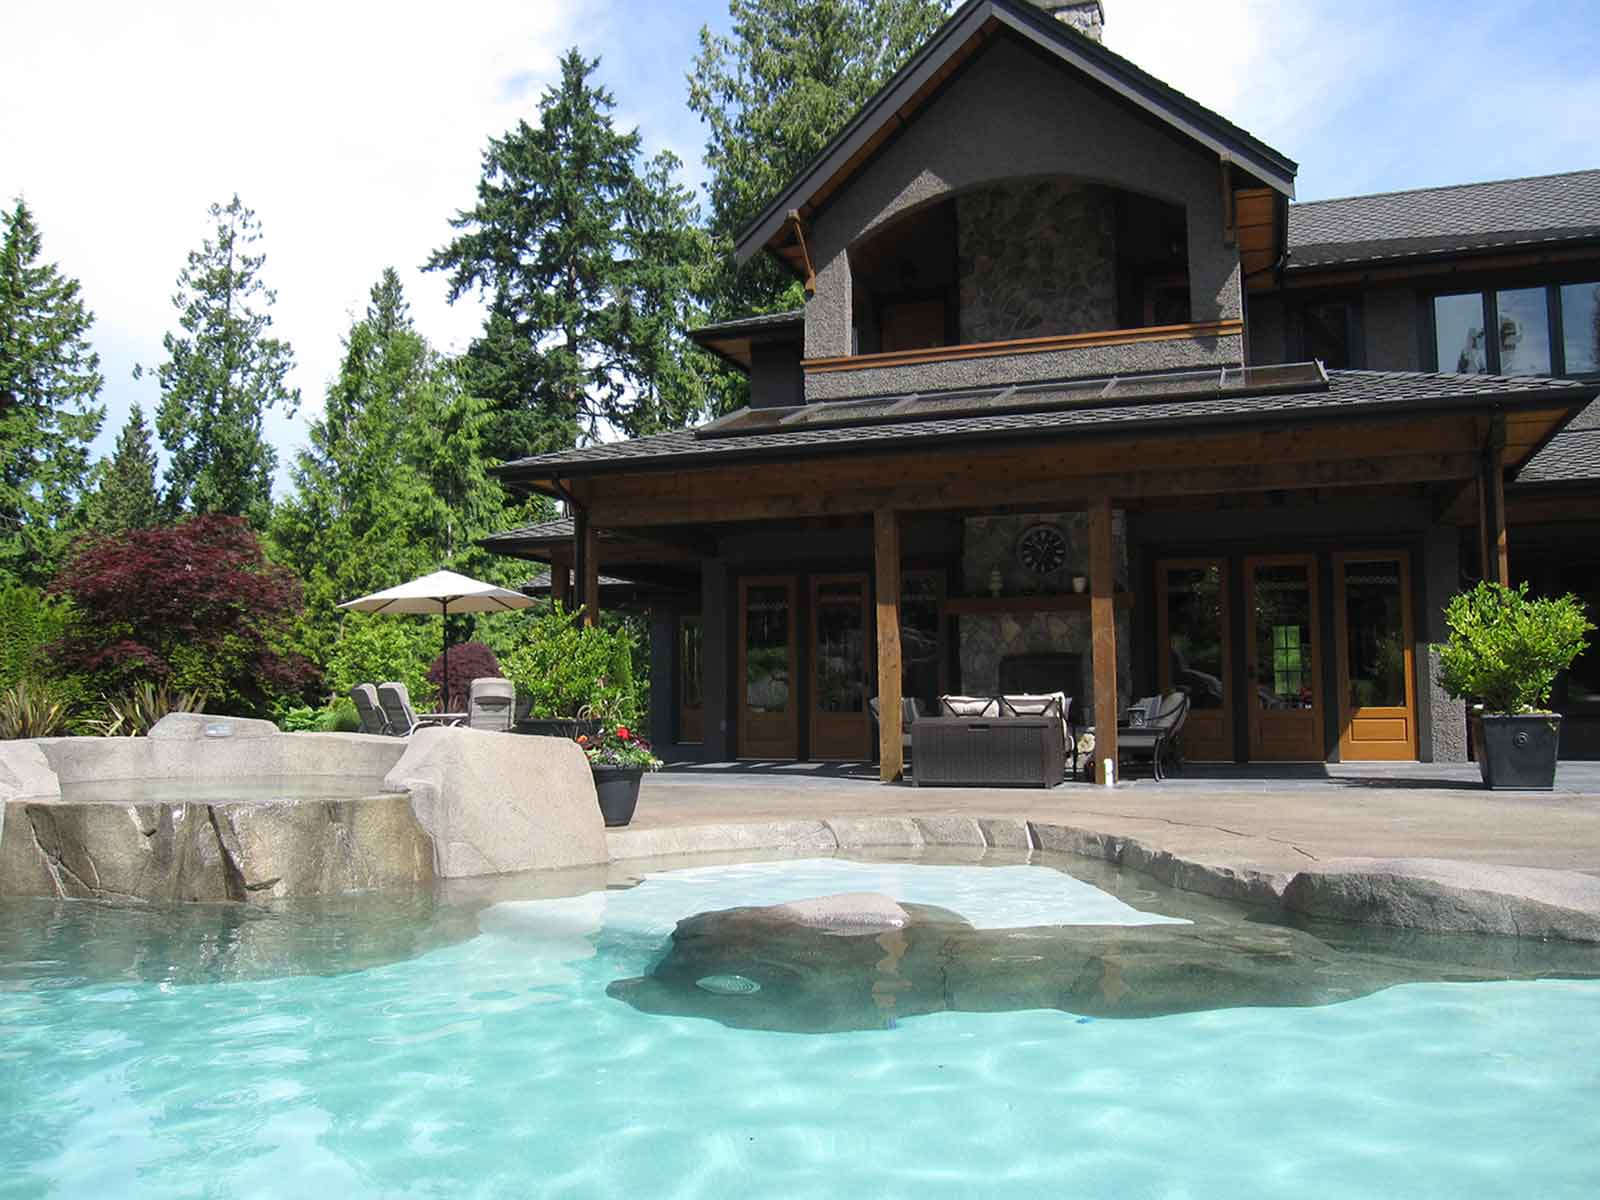 Beautiful backyard with custom in-ground swimming pool and sculted rock